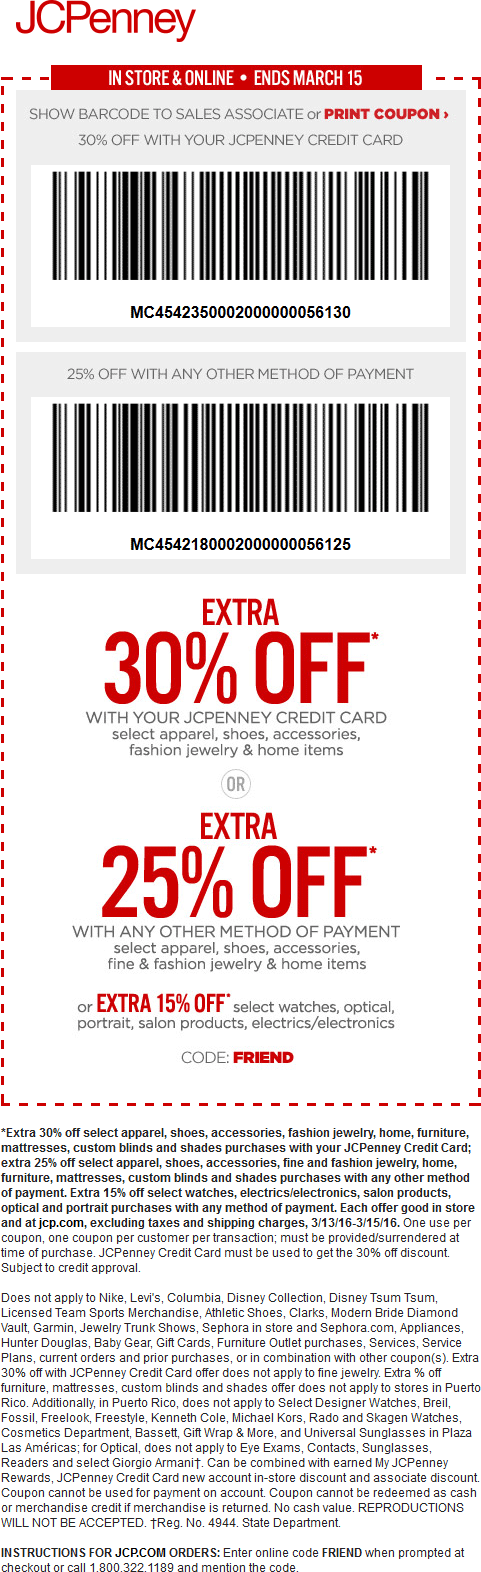 JCPenney Coupon February 2017 25% off at JCPenney, or online via promo code FRIEND